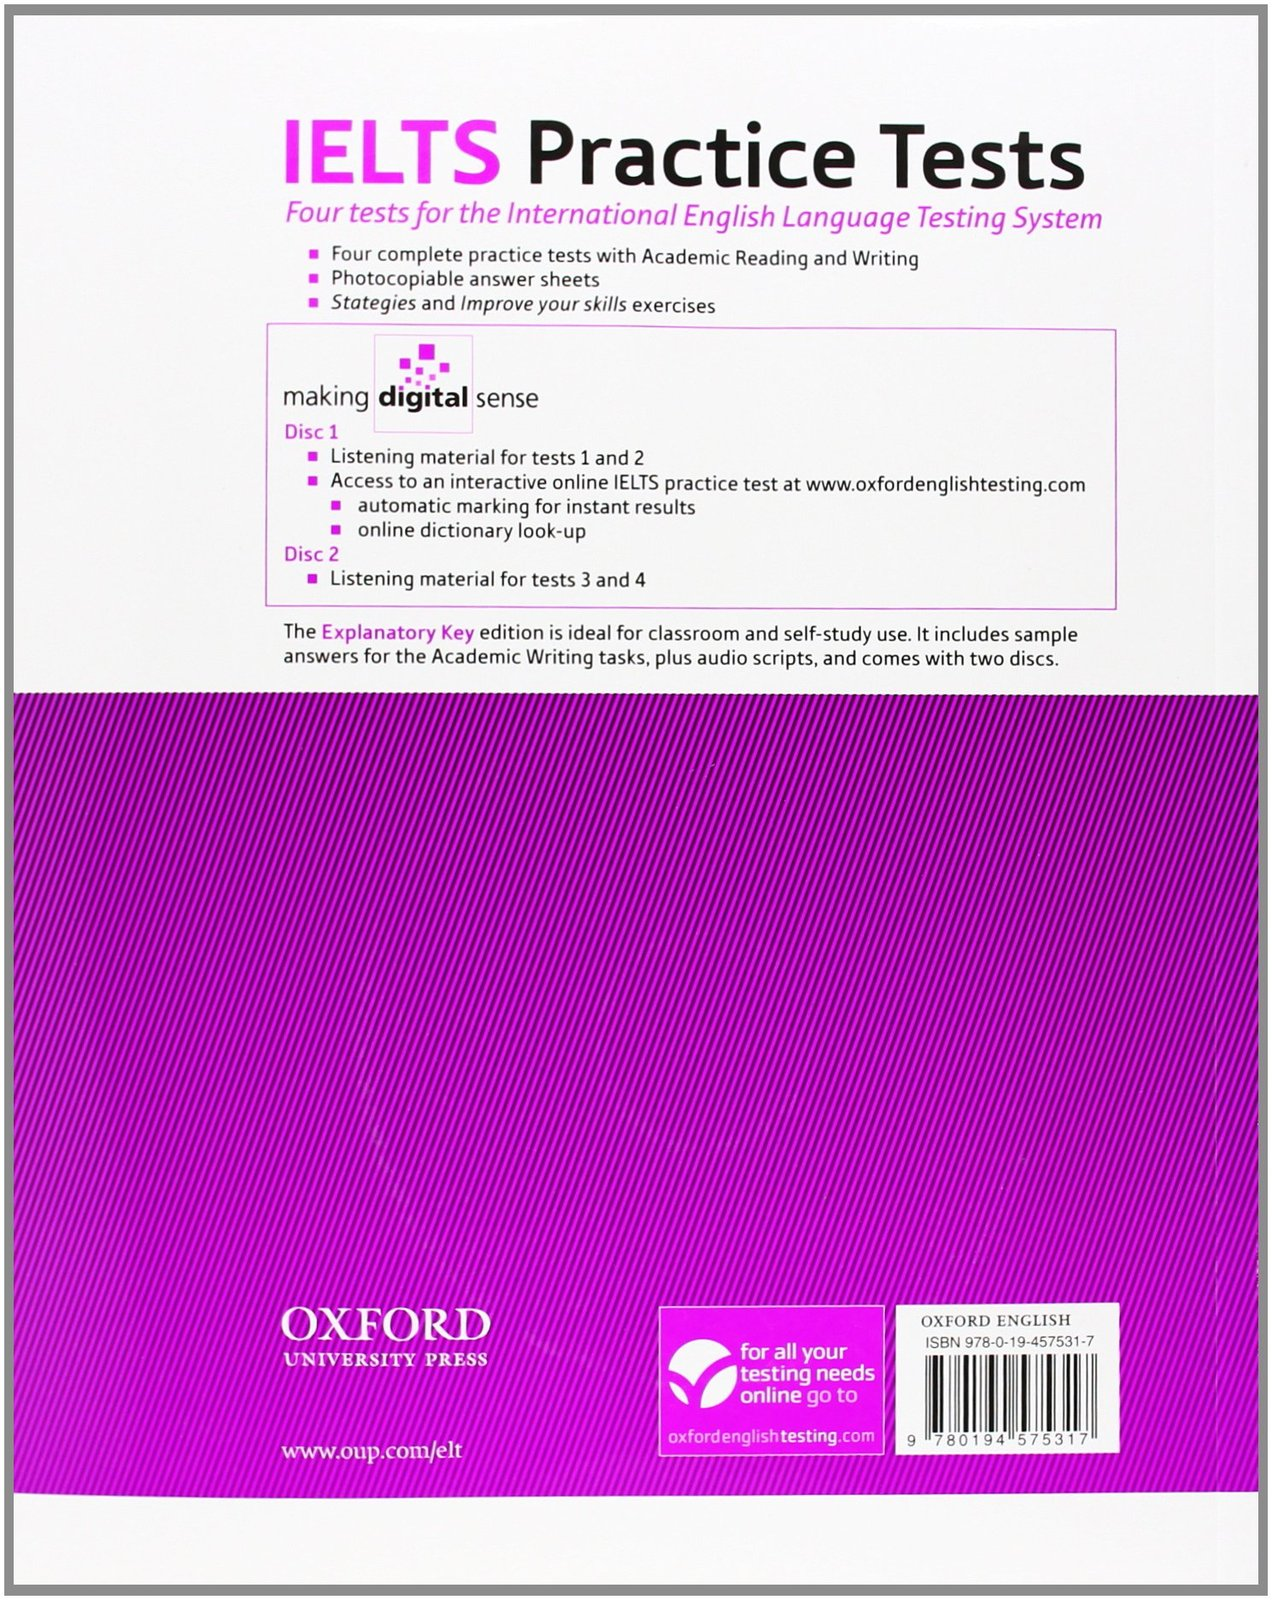 IELTS Practice Tests: IELTS Practice Tests with ...